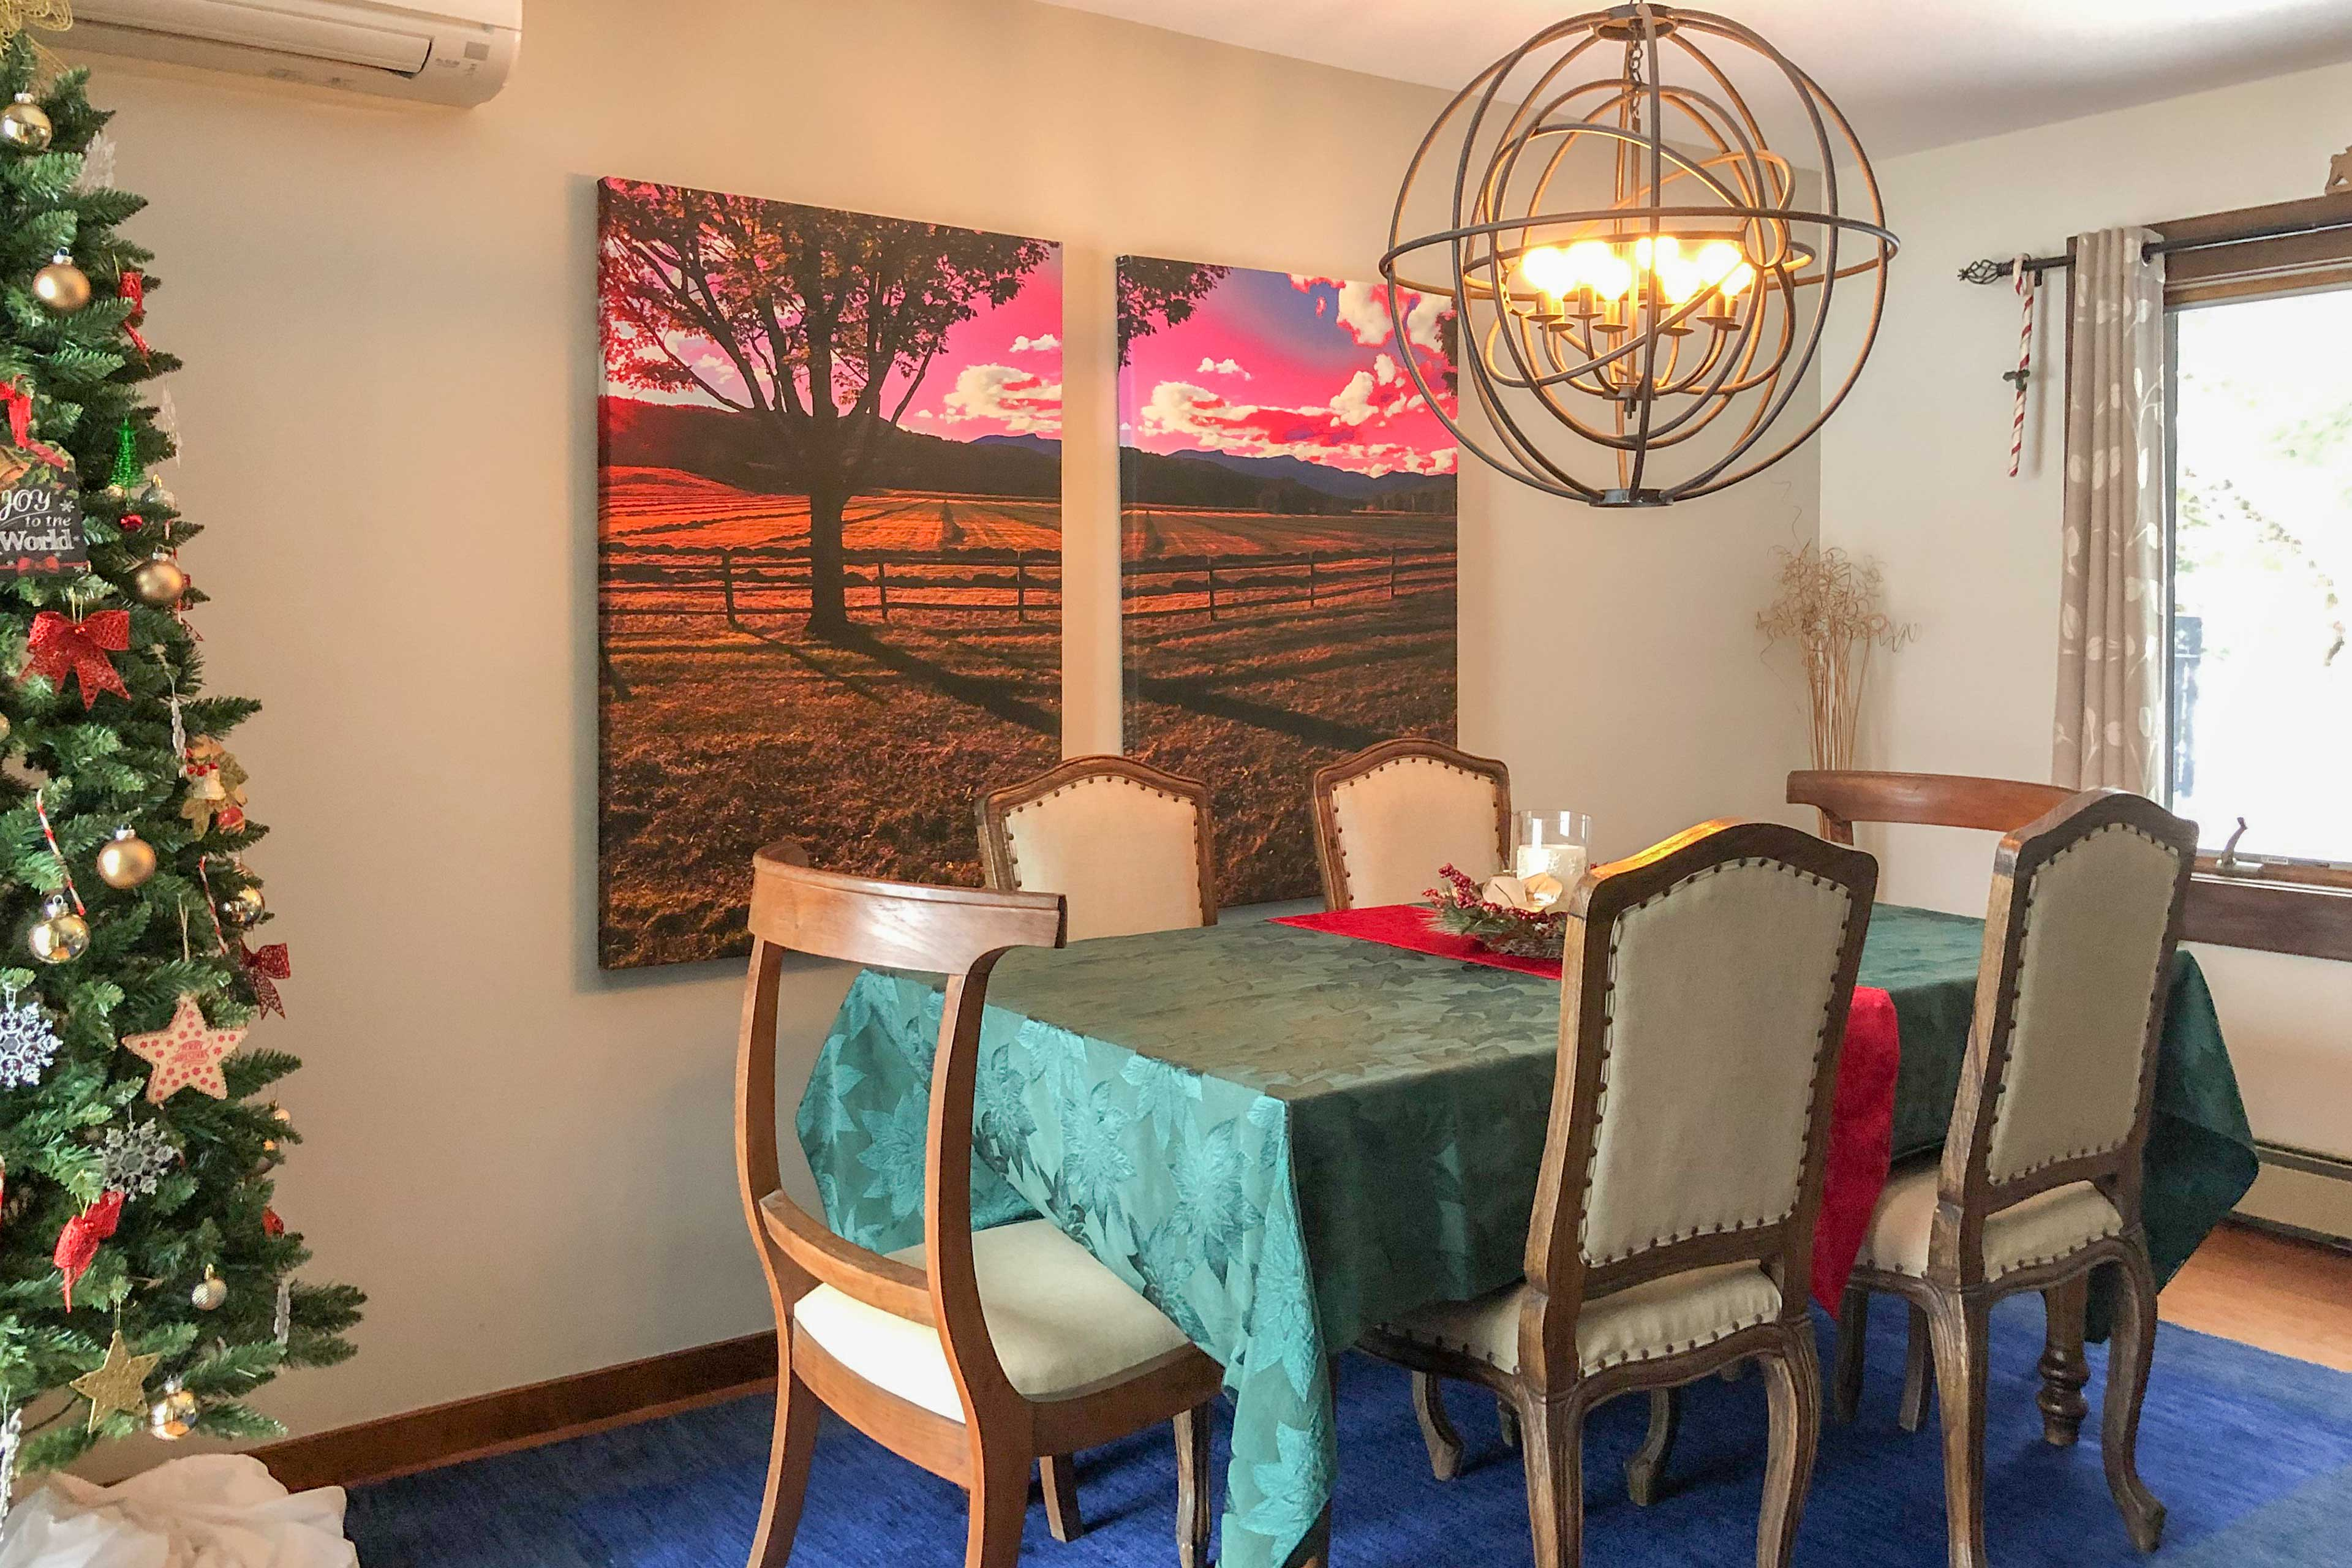 When hunger strikes, head to the kitchen and dining area.